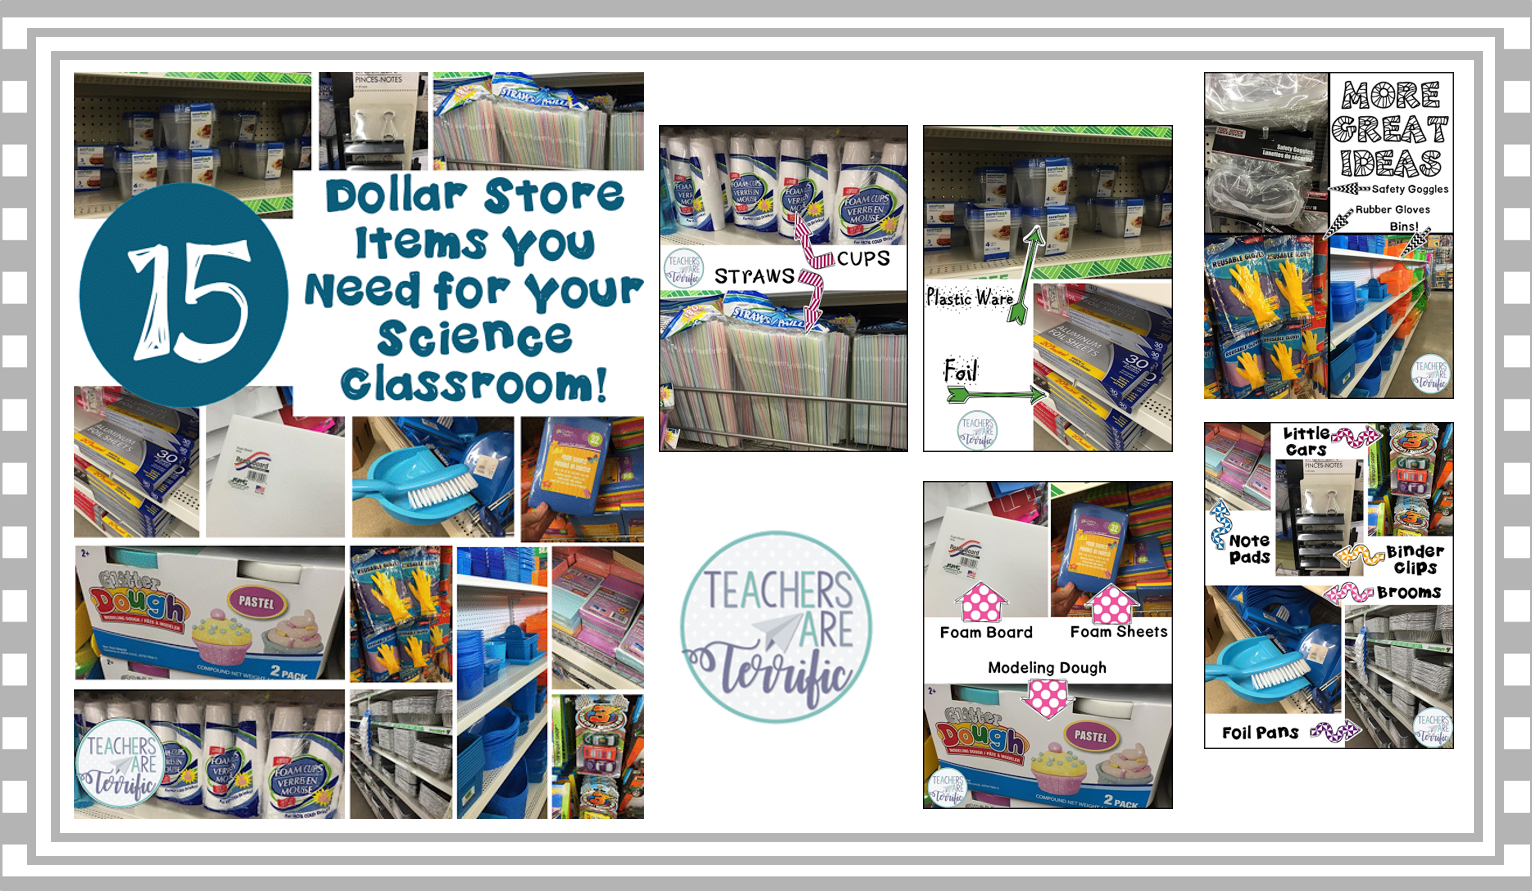 15 ideas for getting materials for your STEM class from the Dollar Tree. Included is advice about what NOT to buy there!